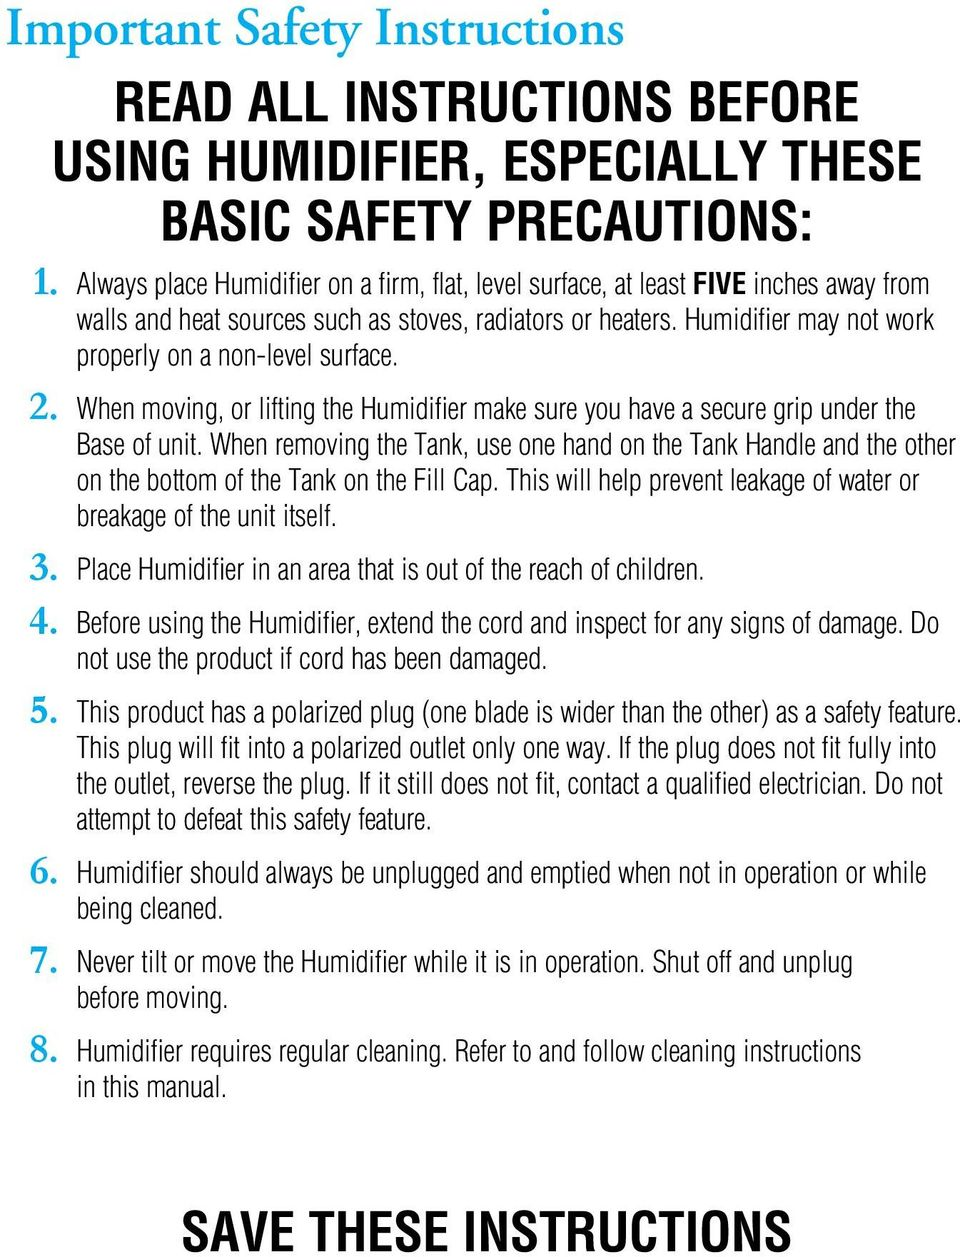 Humidifier may not work properly on a non-level surface. 2. When moving, or lifting the Humidifier make sure you have a secure grip under the Base of unit.